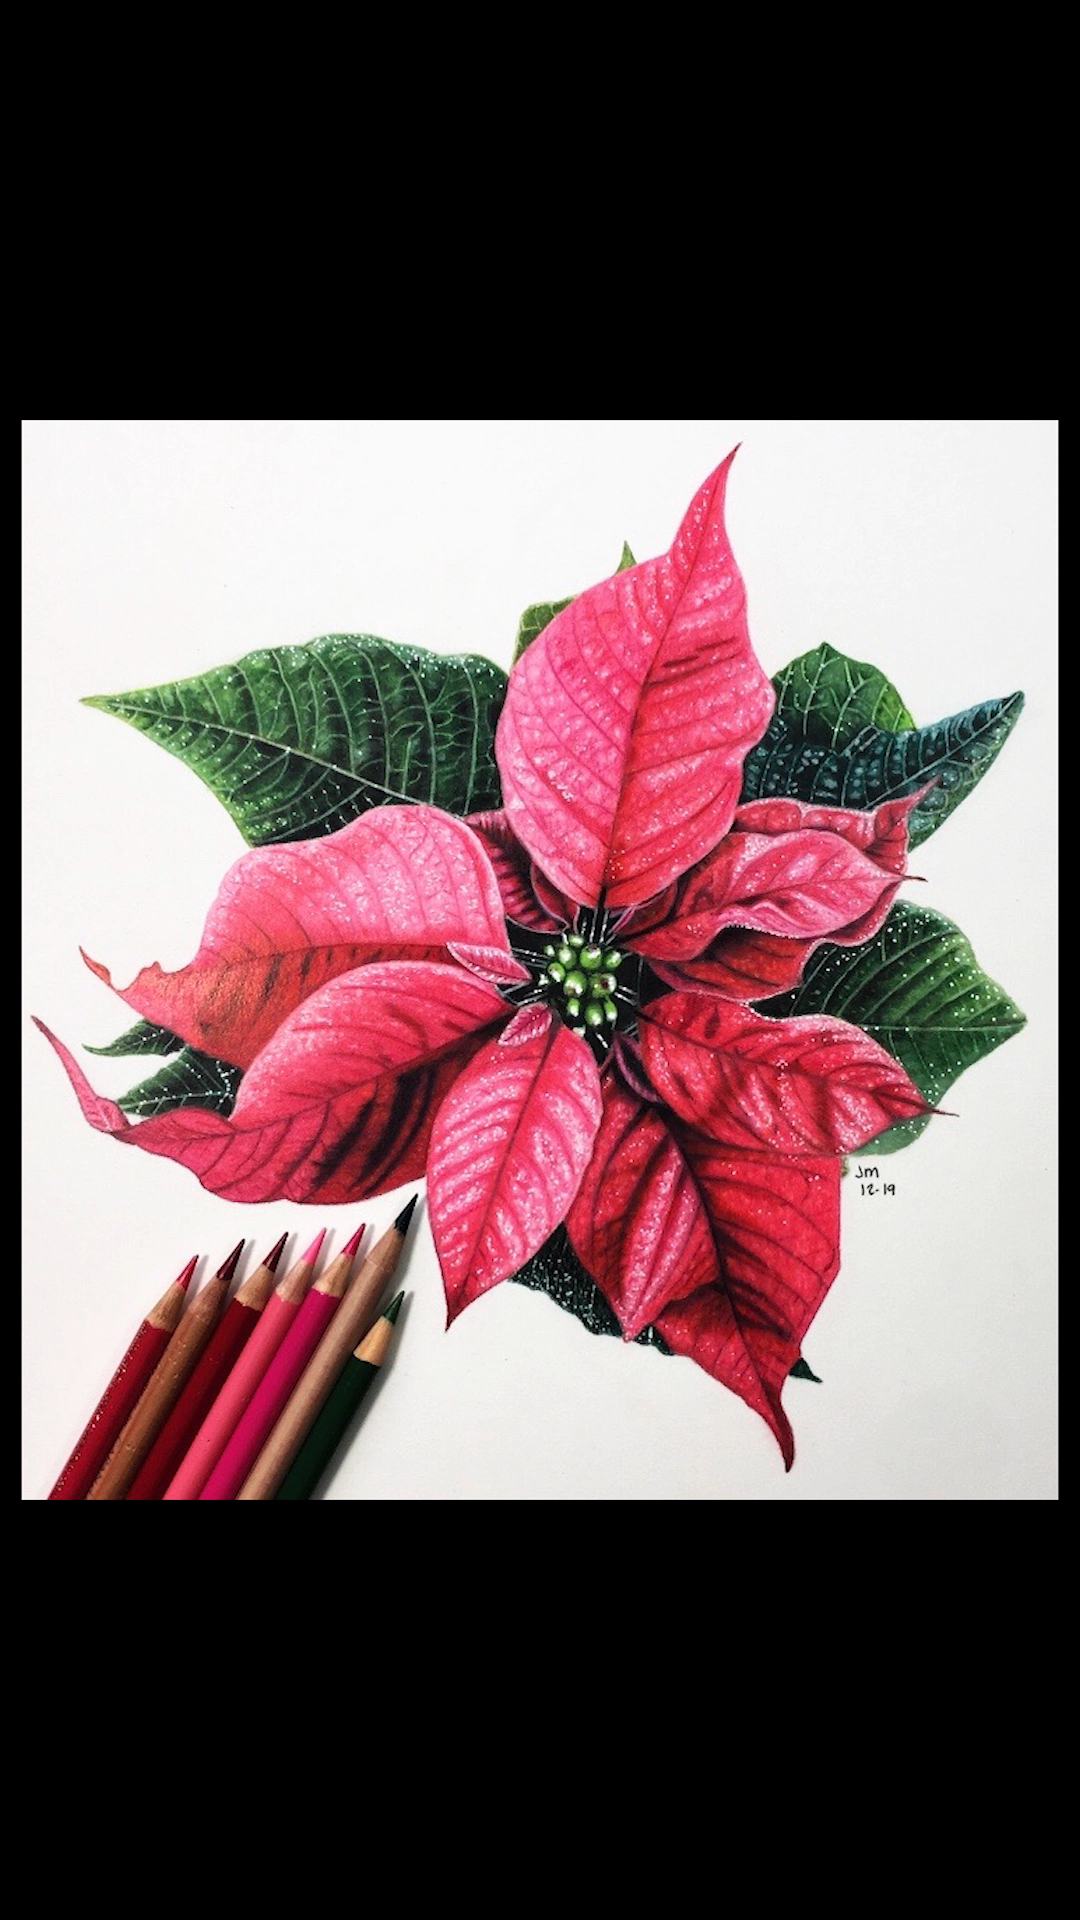 Jennifer Morrison Art Is Creating Botanical Colored Pencil Drawing Tutorials Patreon Video Video Realistic Flower Drawing Flower Drawing Tutorials Flower Drawing